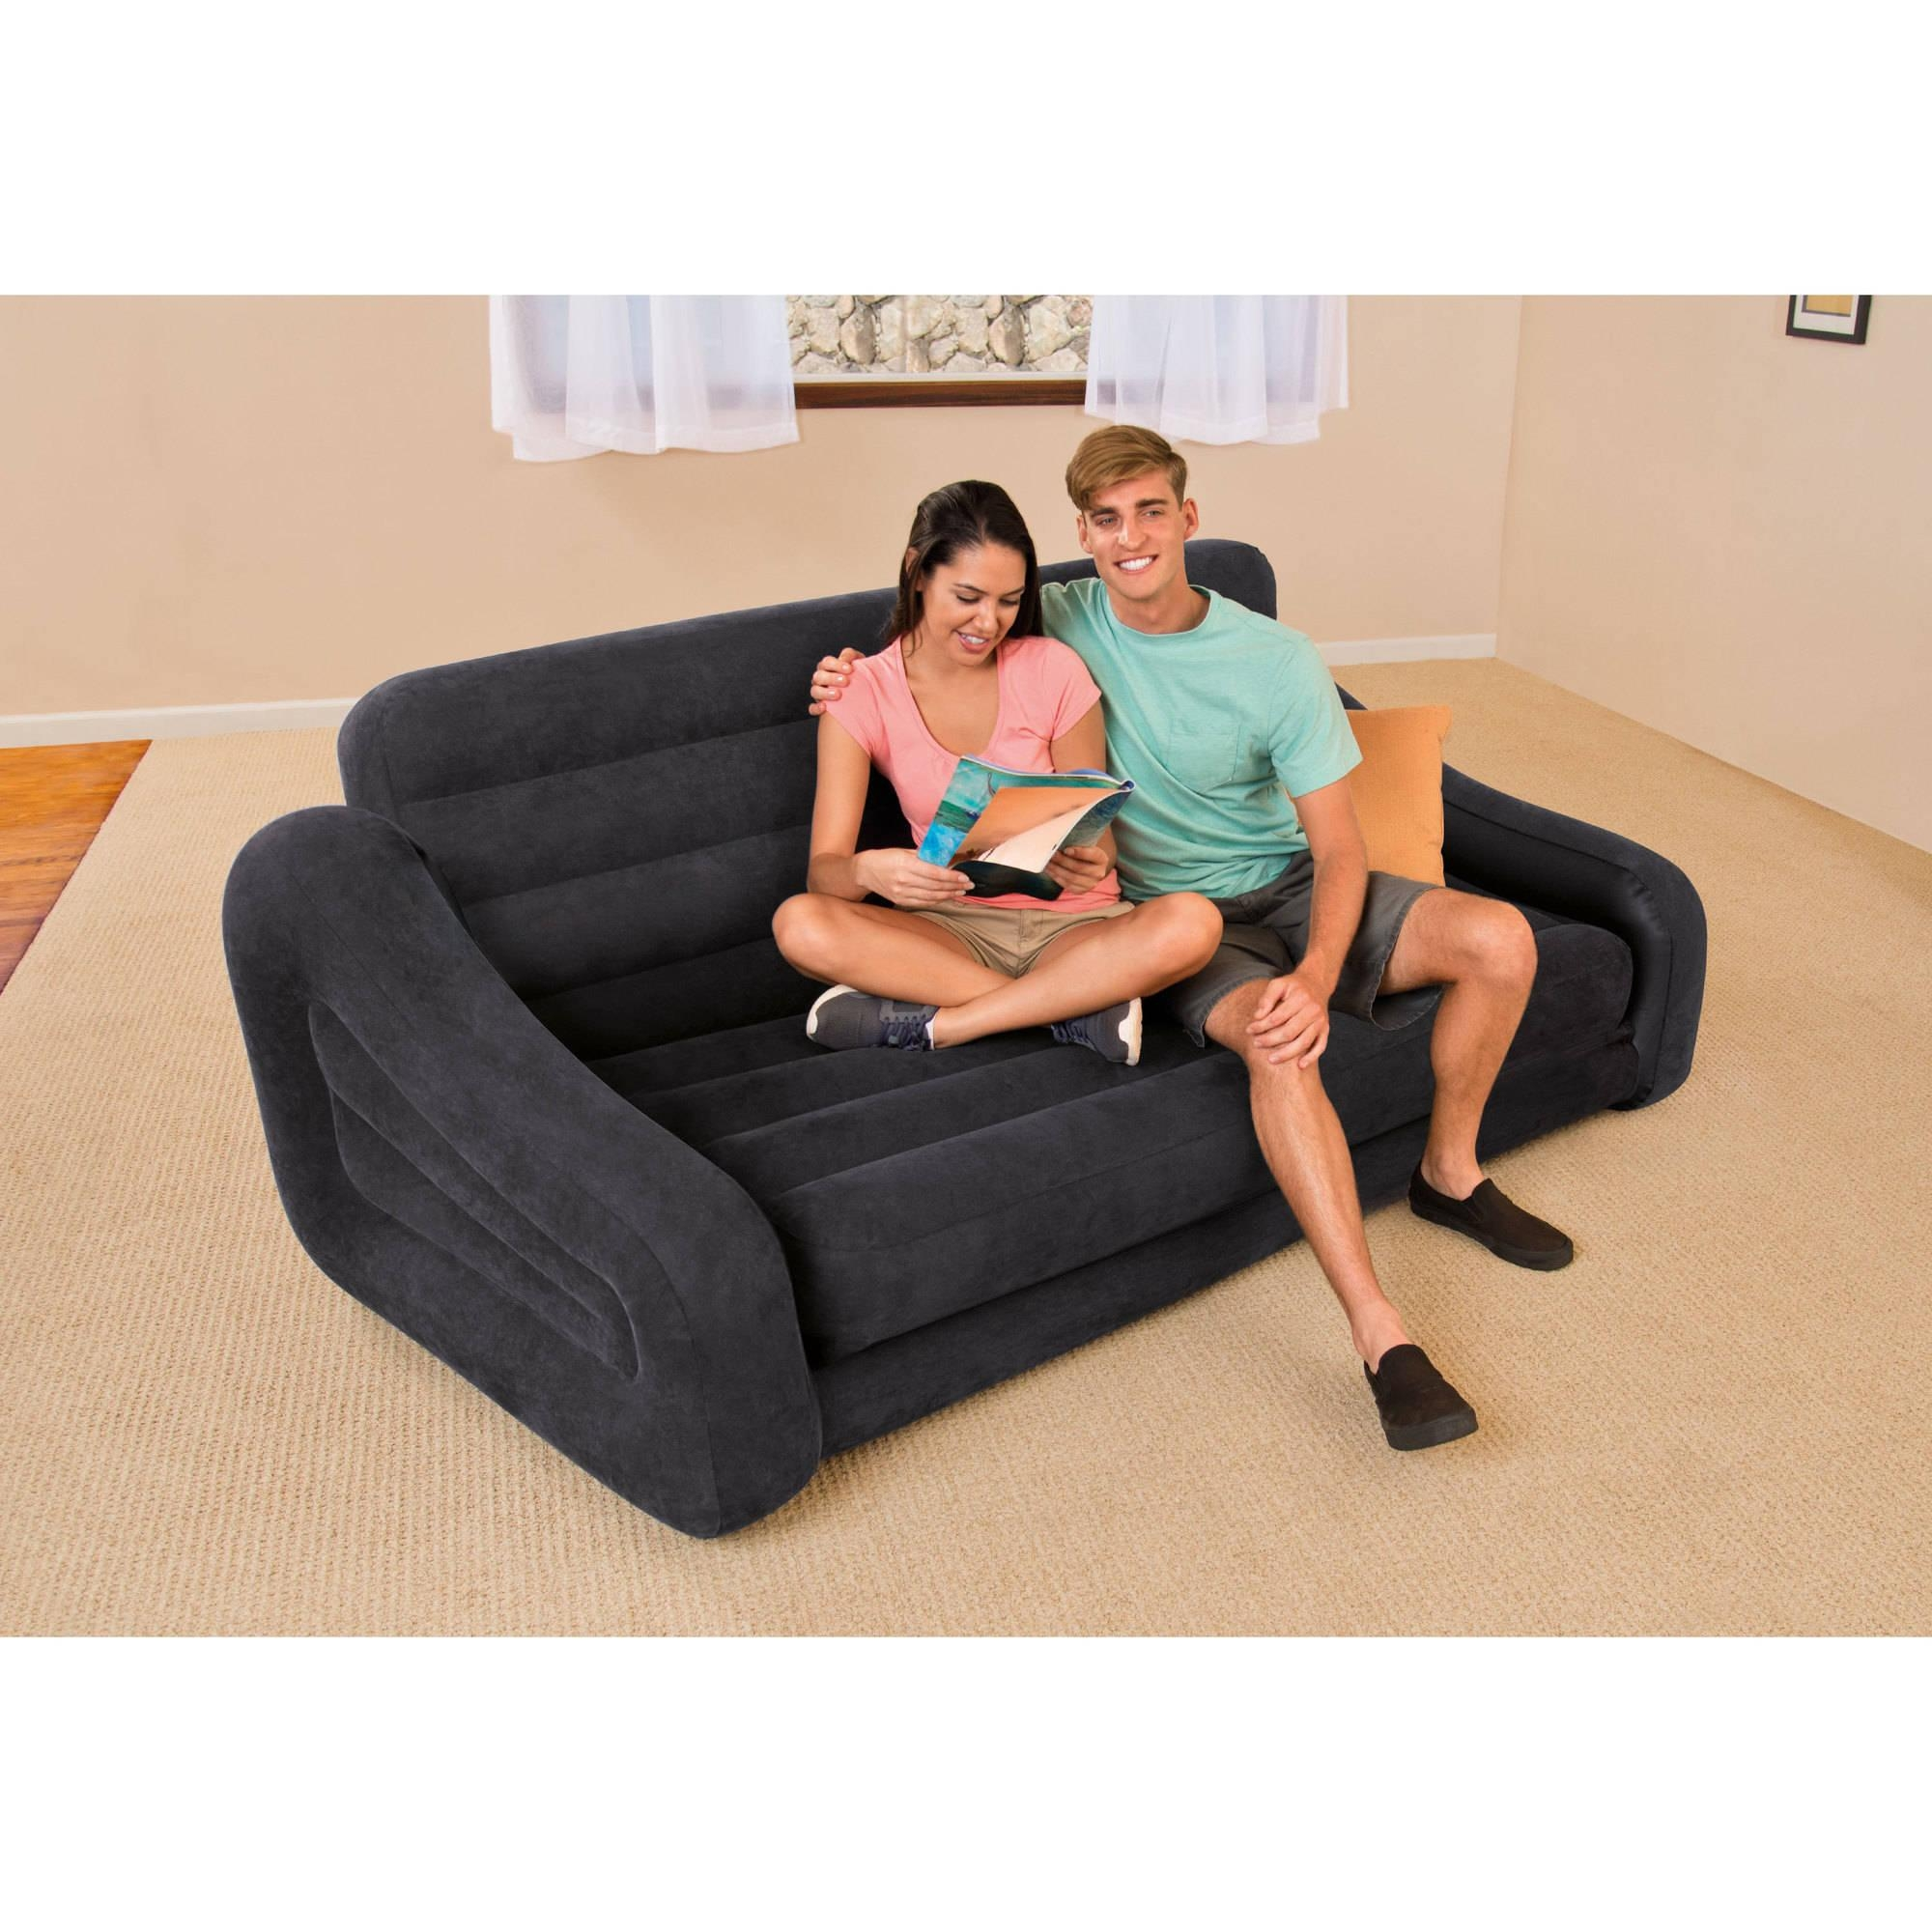 air mattress pull out sofa beds society modern leather sectional with chair 20 43 choices of intex ideas